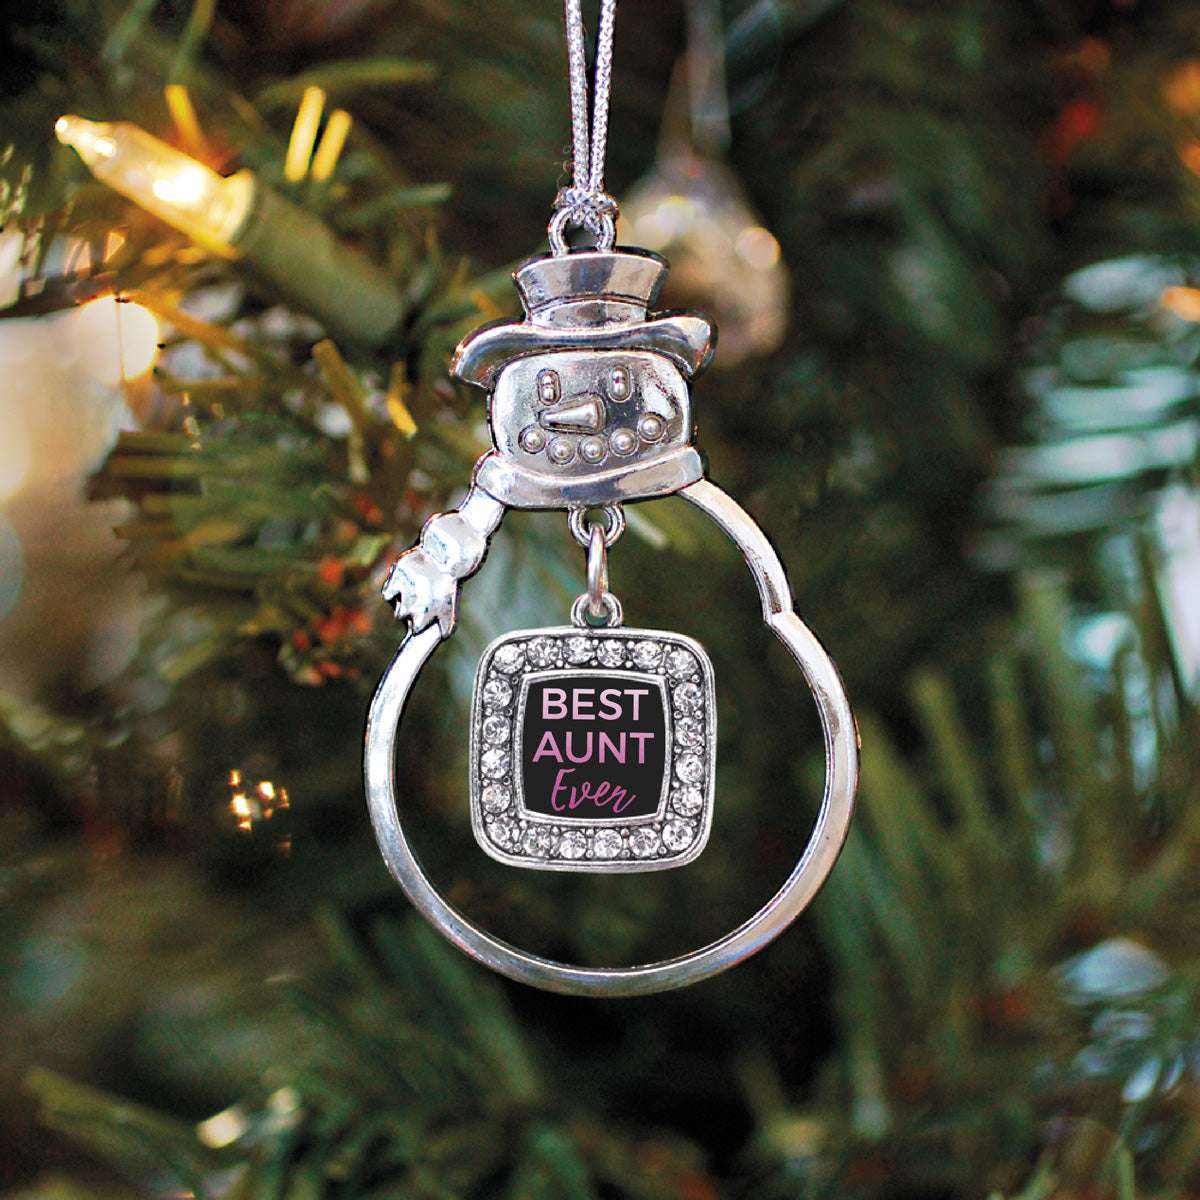 Best Aunt Ever Square Charm Christmas / Holiday Ornament